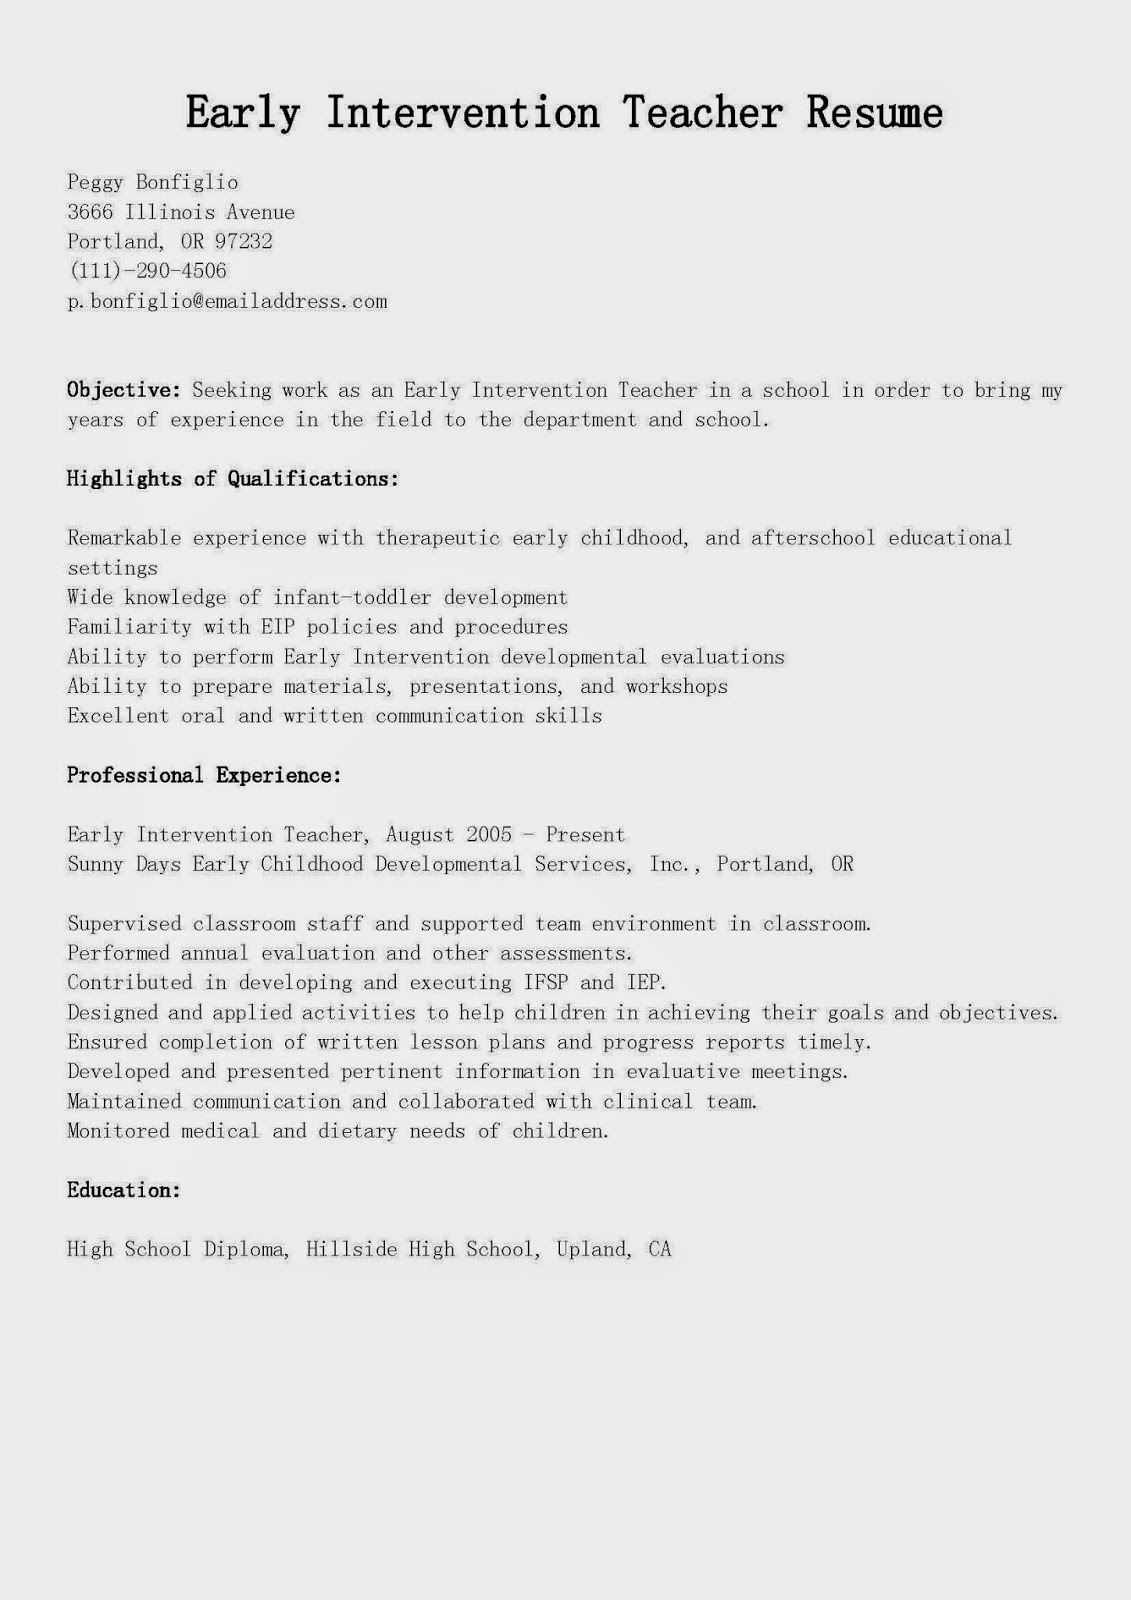 resume format for experienced teachers doc service resume resume format for experienced teachers doc experienced resume sample packet depaul the career resume samples early